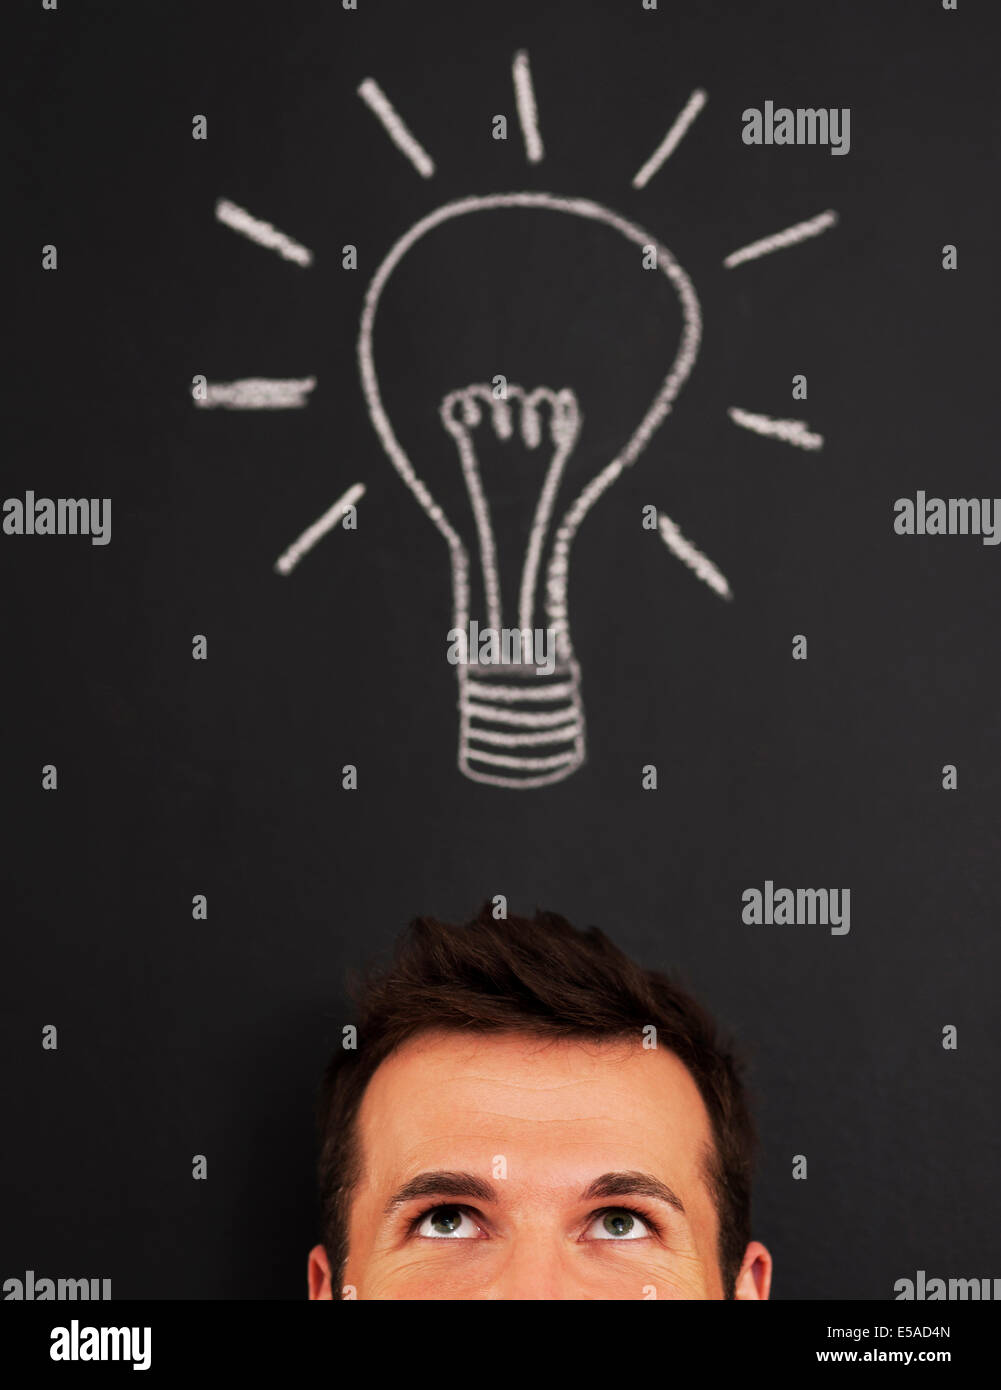 Man with light bulb above his head, Debica, Poland - Stock Image